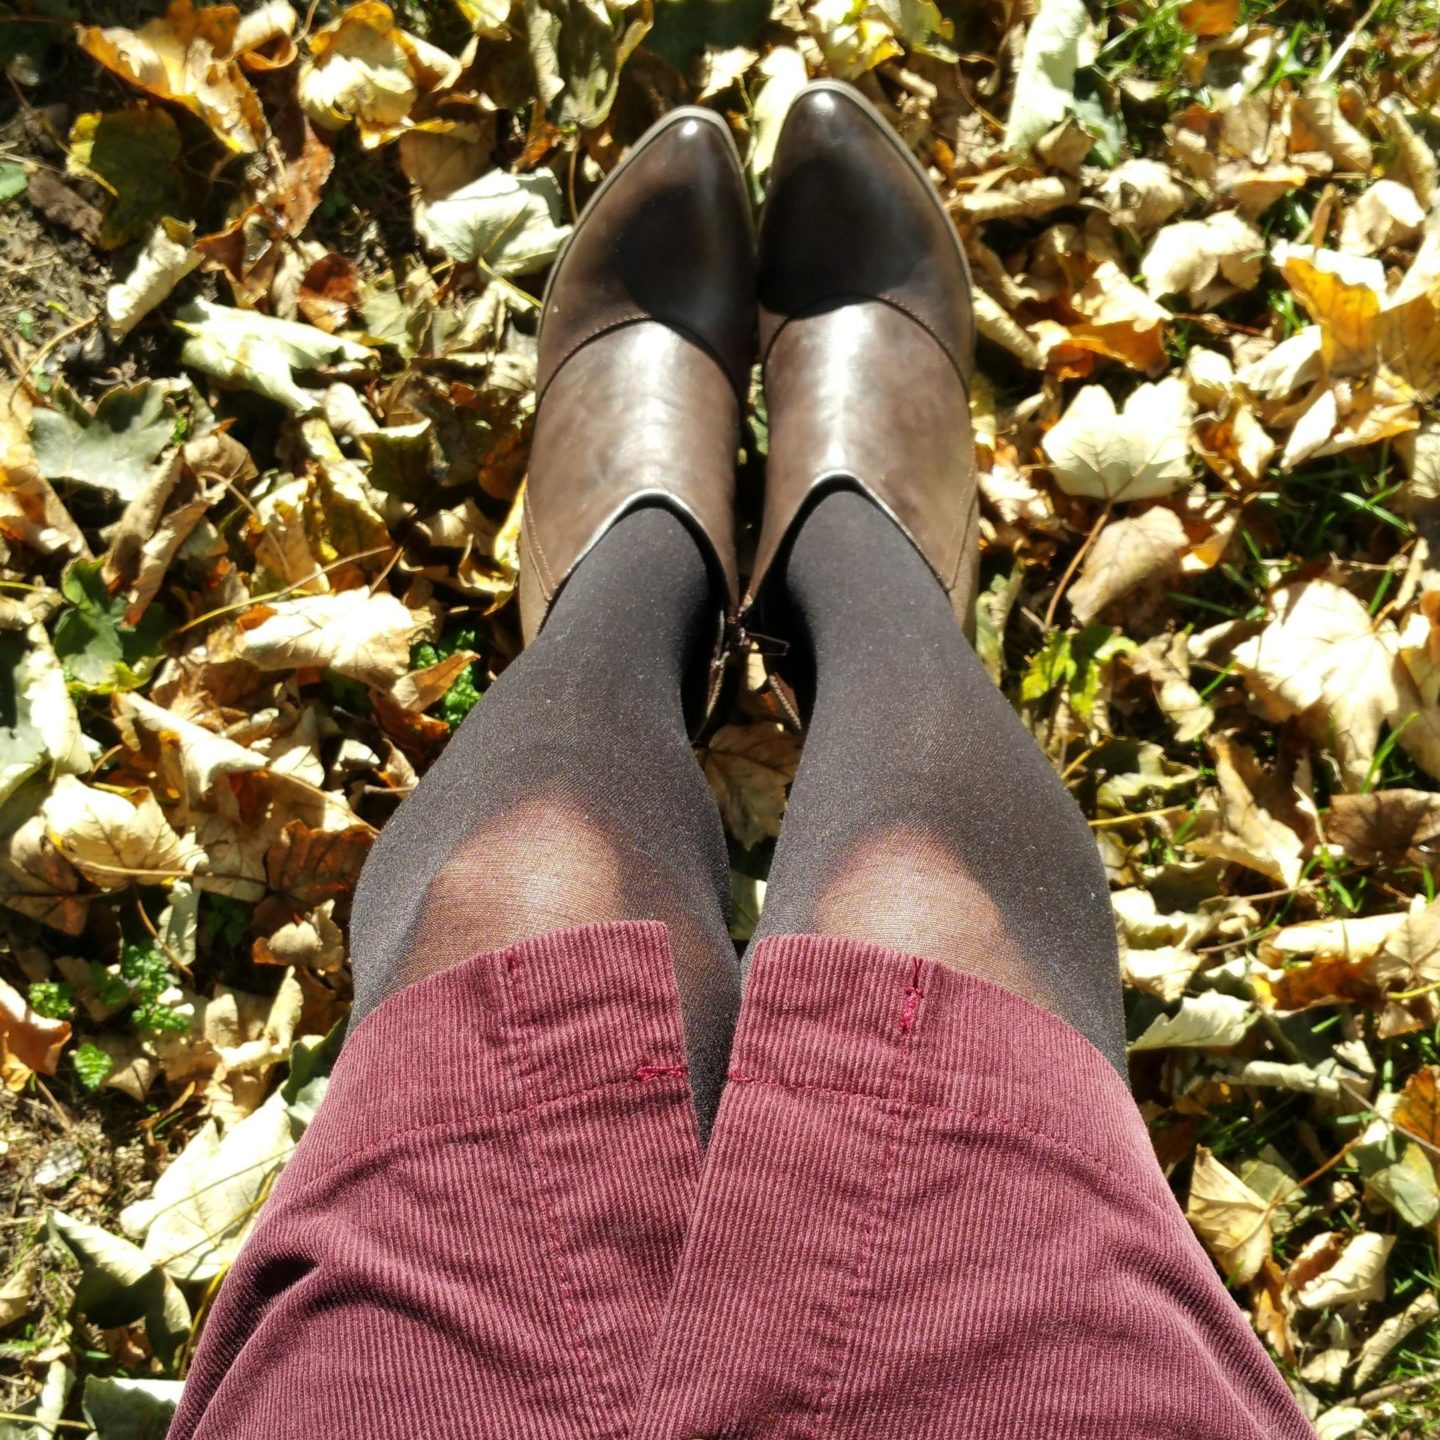 walking amongst Autumn leaves